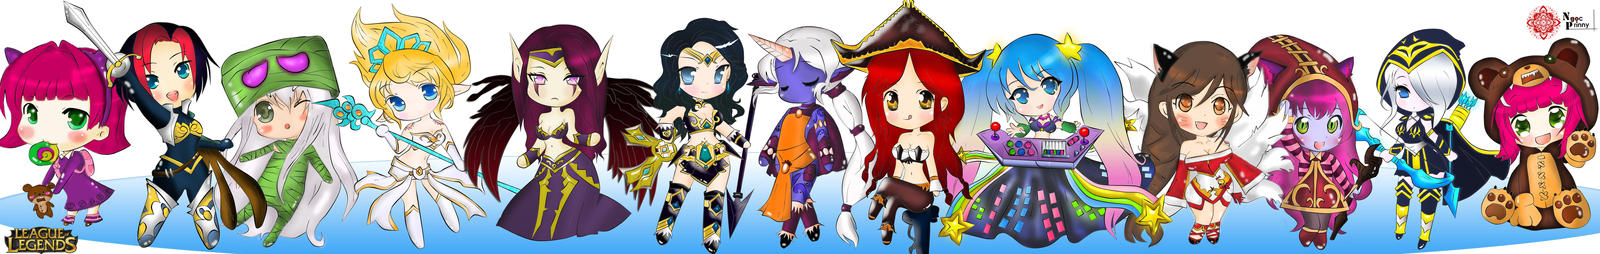 Chibi Champions from League of Legends by NPrinny